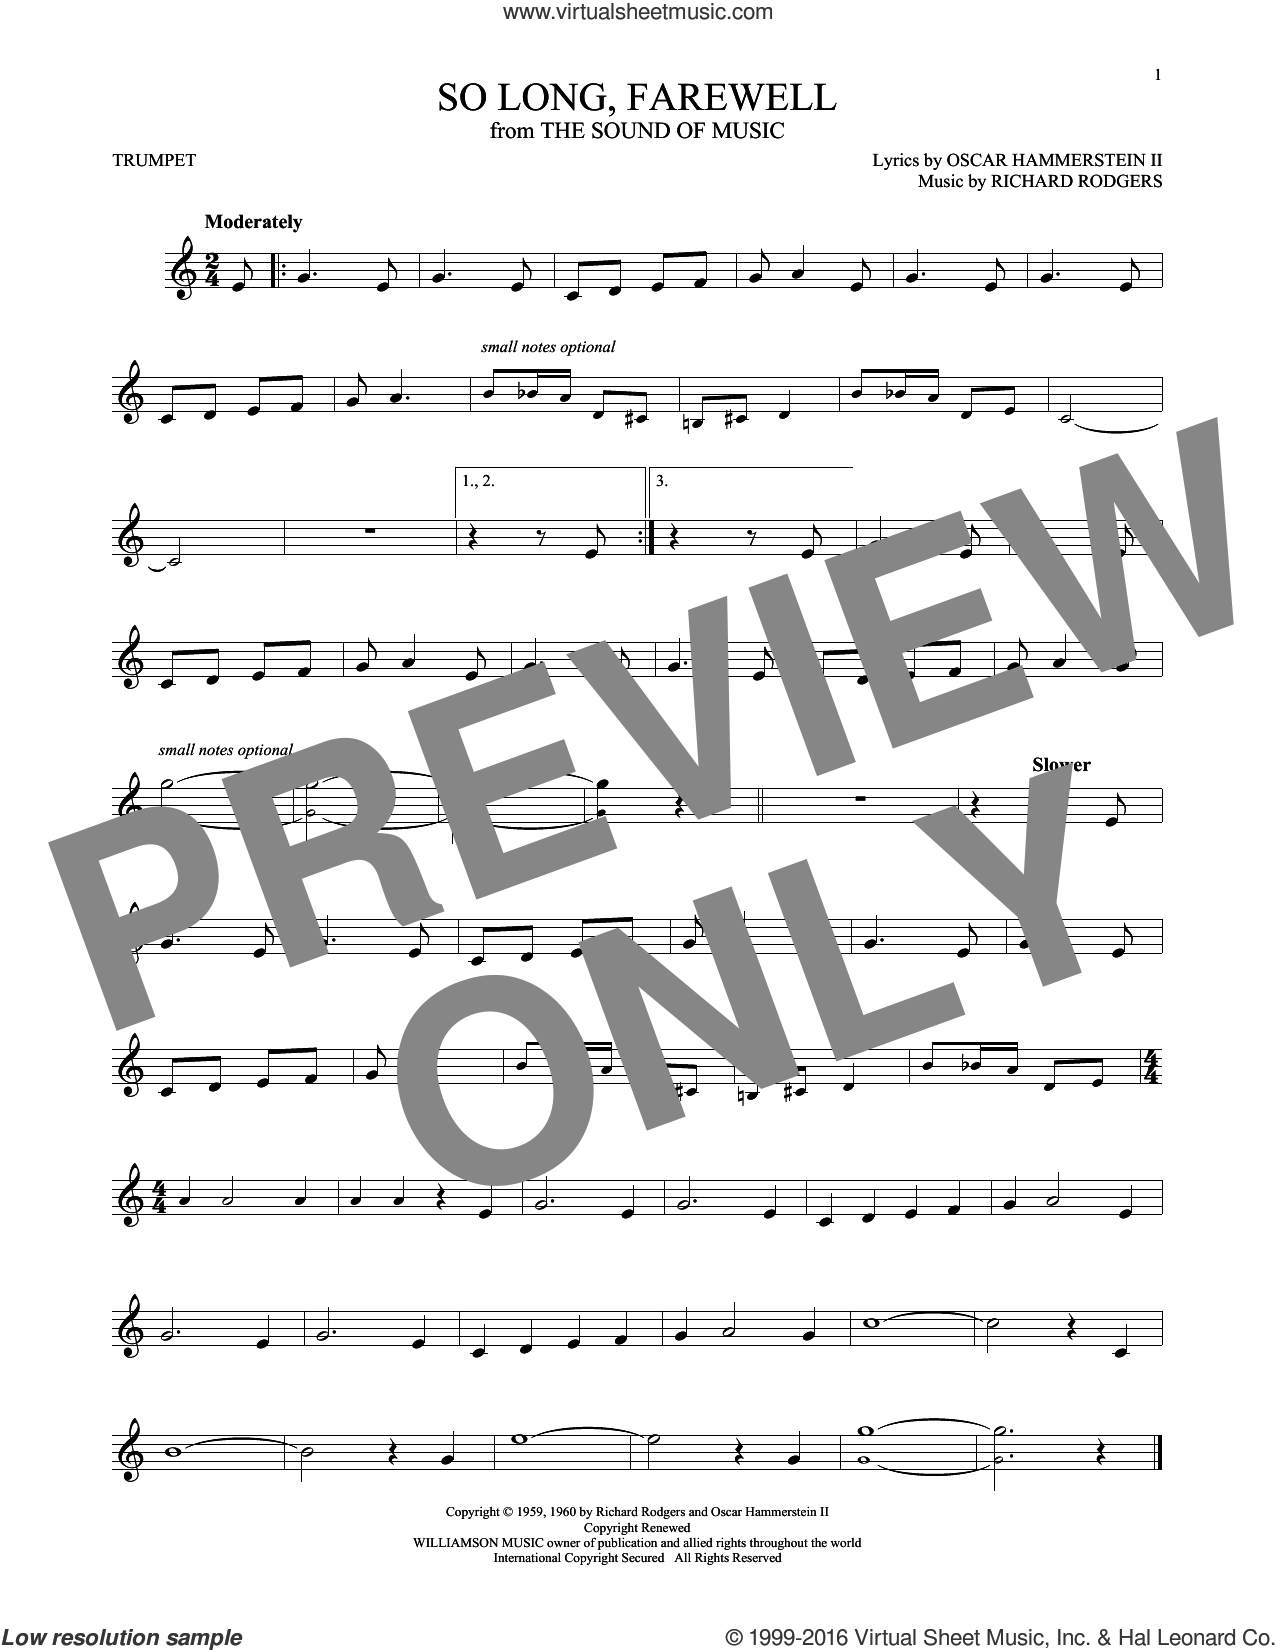 So Long, Farewell sheet music for trumpet solo by Rodgers & Hammerstein, Oscar II Hammerstein and Richard Rodgers, intermediate trumpet. Score Image Preview.